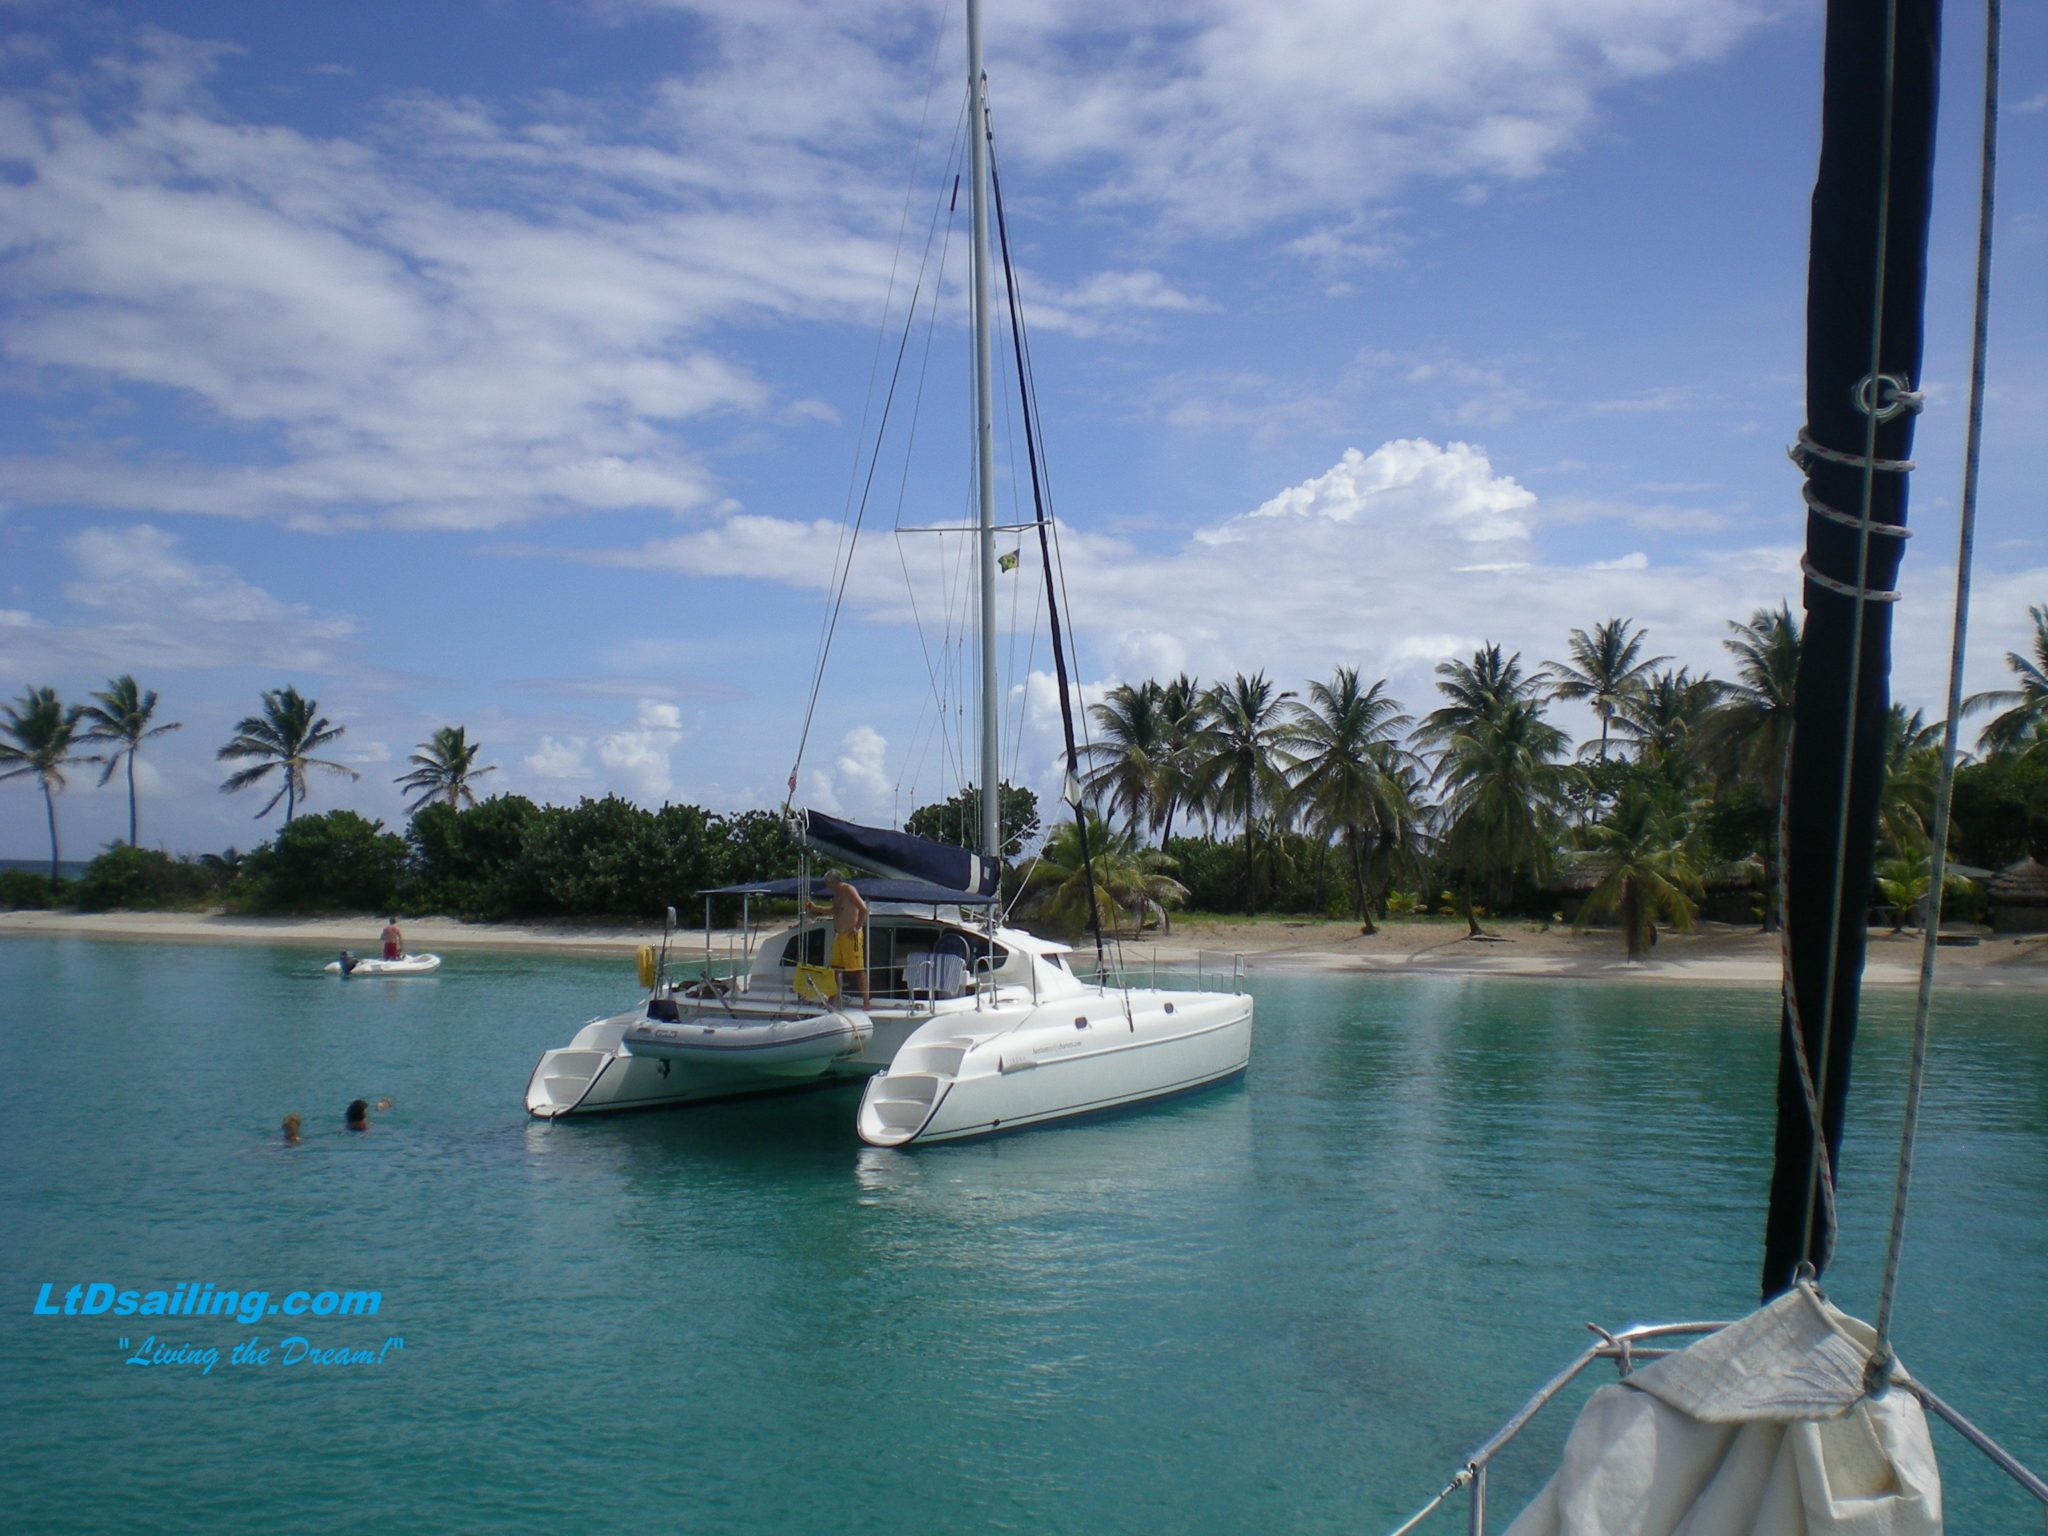 Caribbean Catamaran Sailing School LtD Sailing